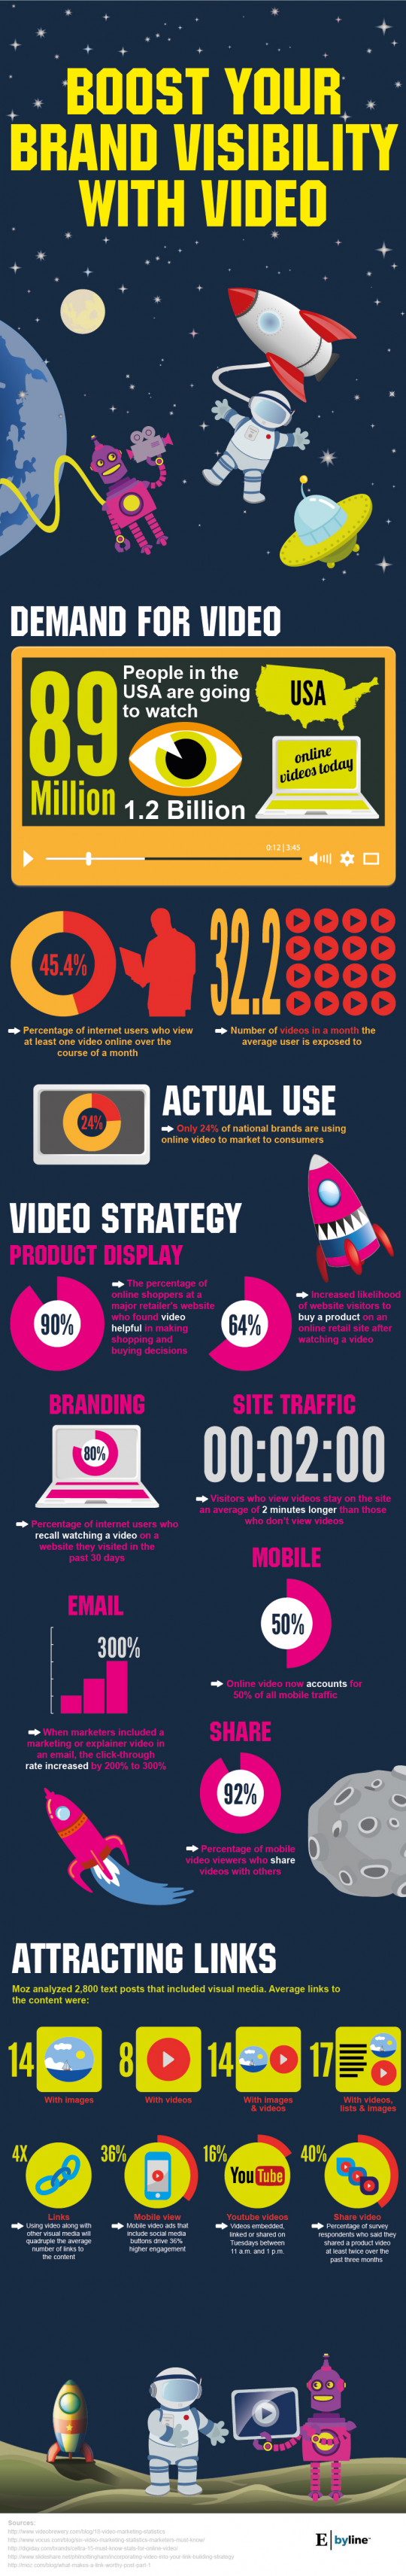 Boost Your Brand Visibility with Video